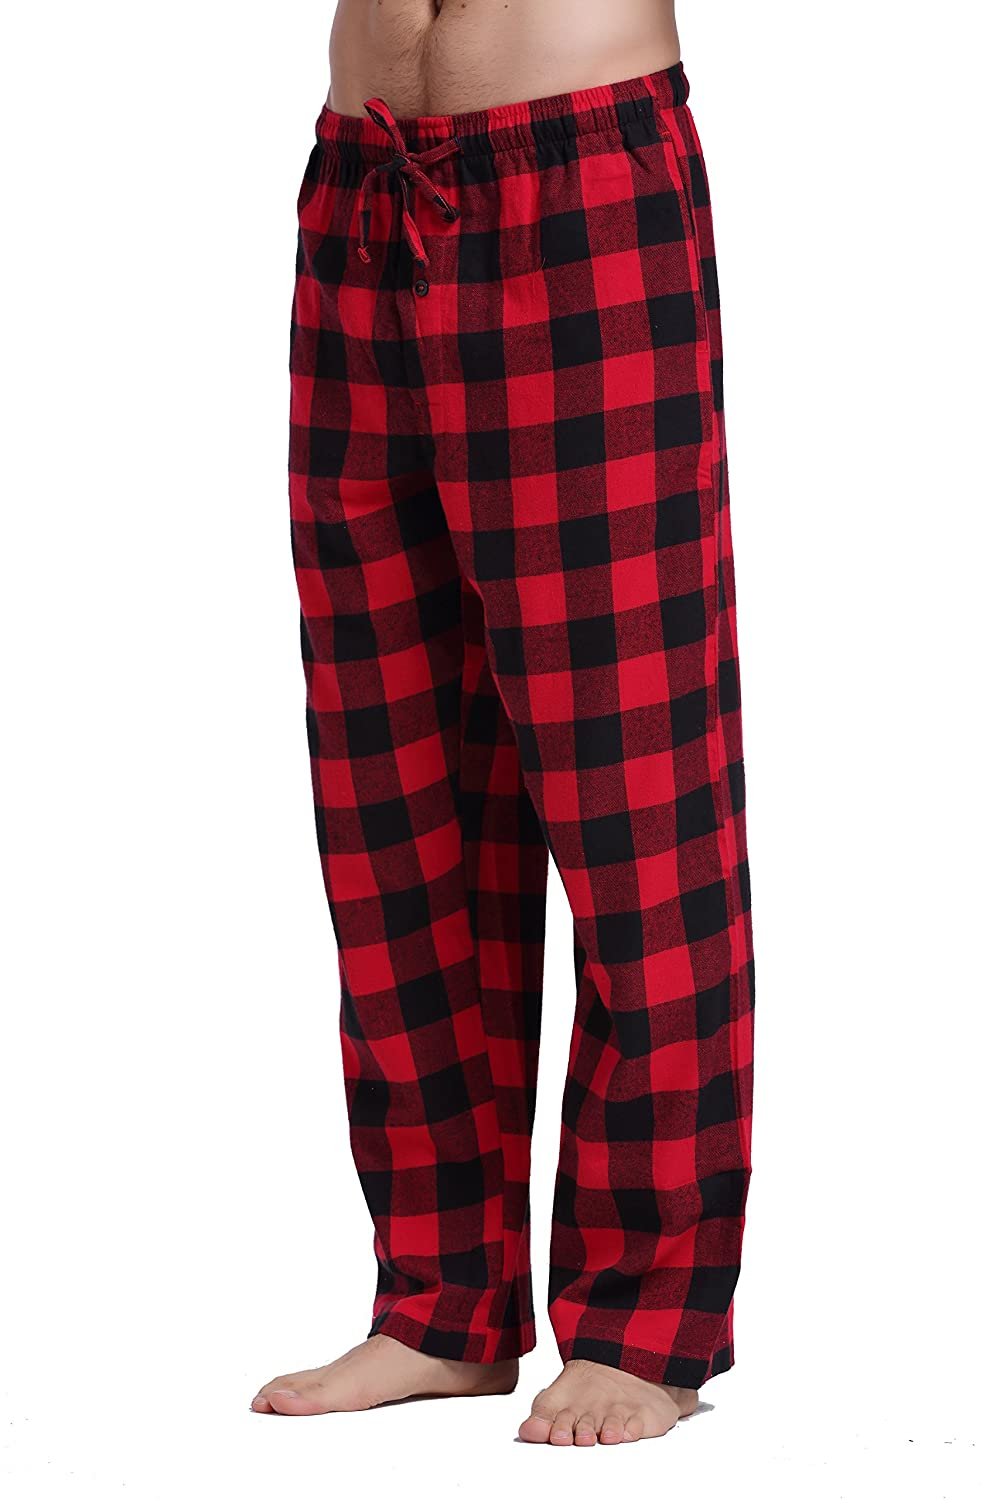 Find great deals on eBay for pajama pants. Shop with confidence.